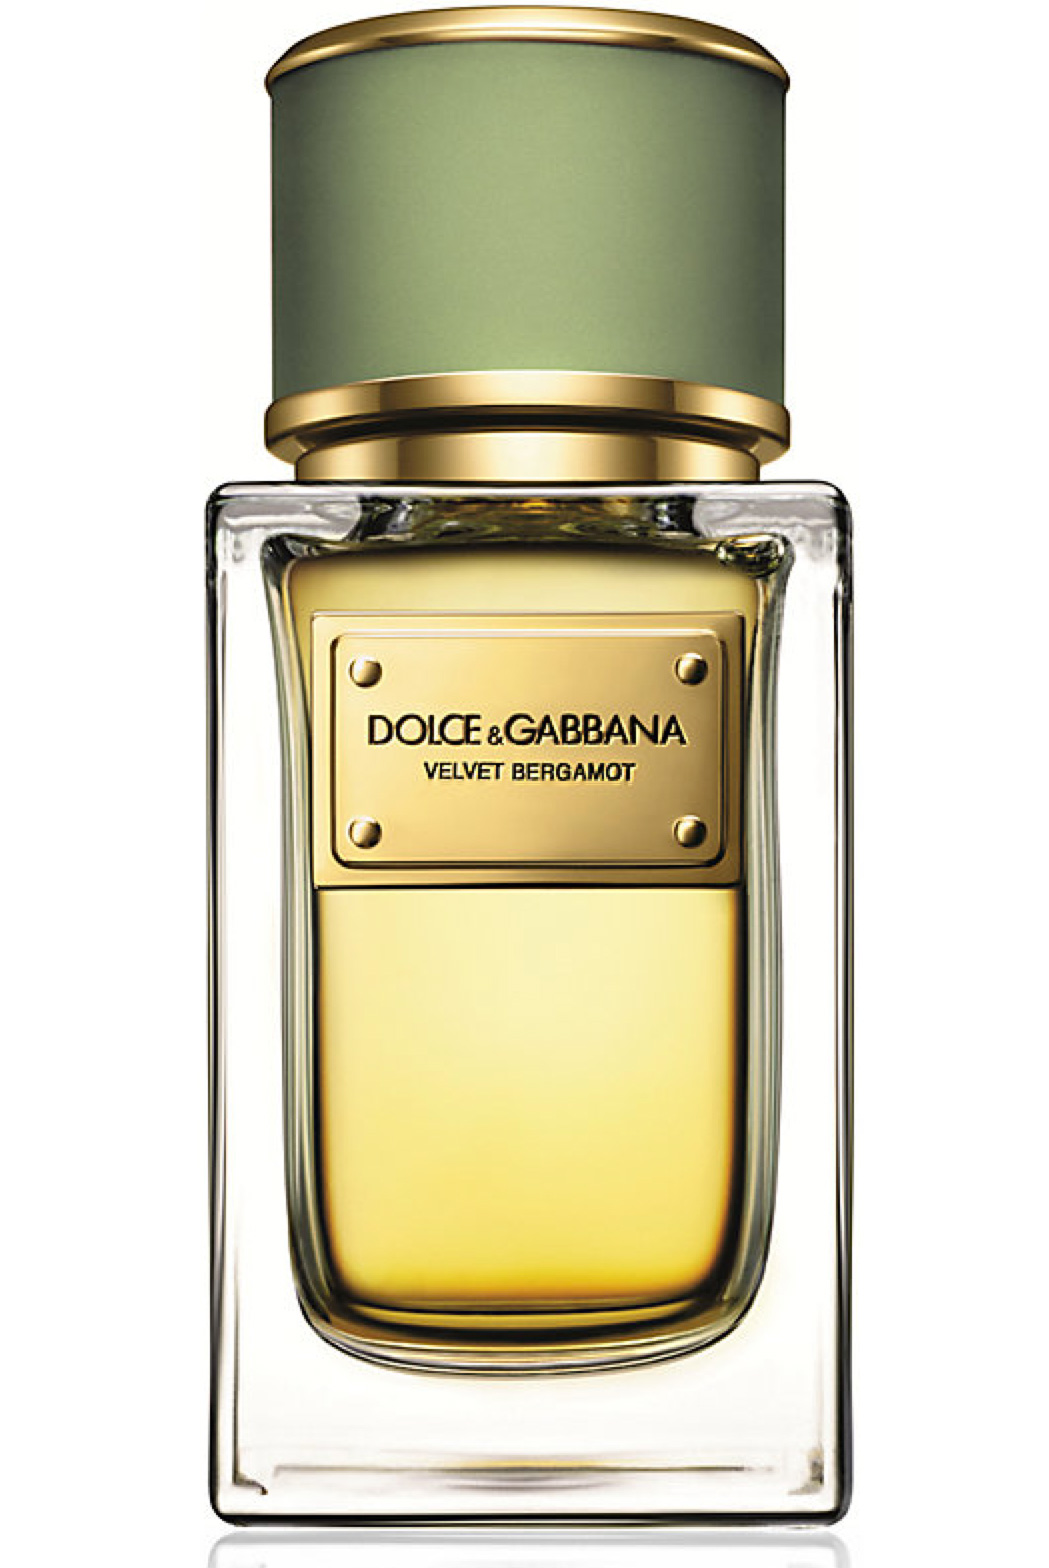 velvet bergamot dolce gabbana cologne a new fragrance for men 2014. Black Bedroom Furniture Sets. Home Design Ideas